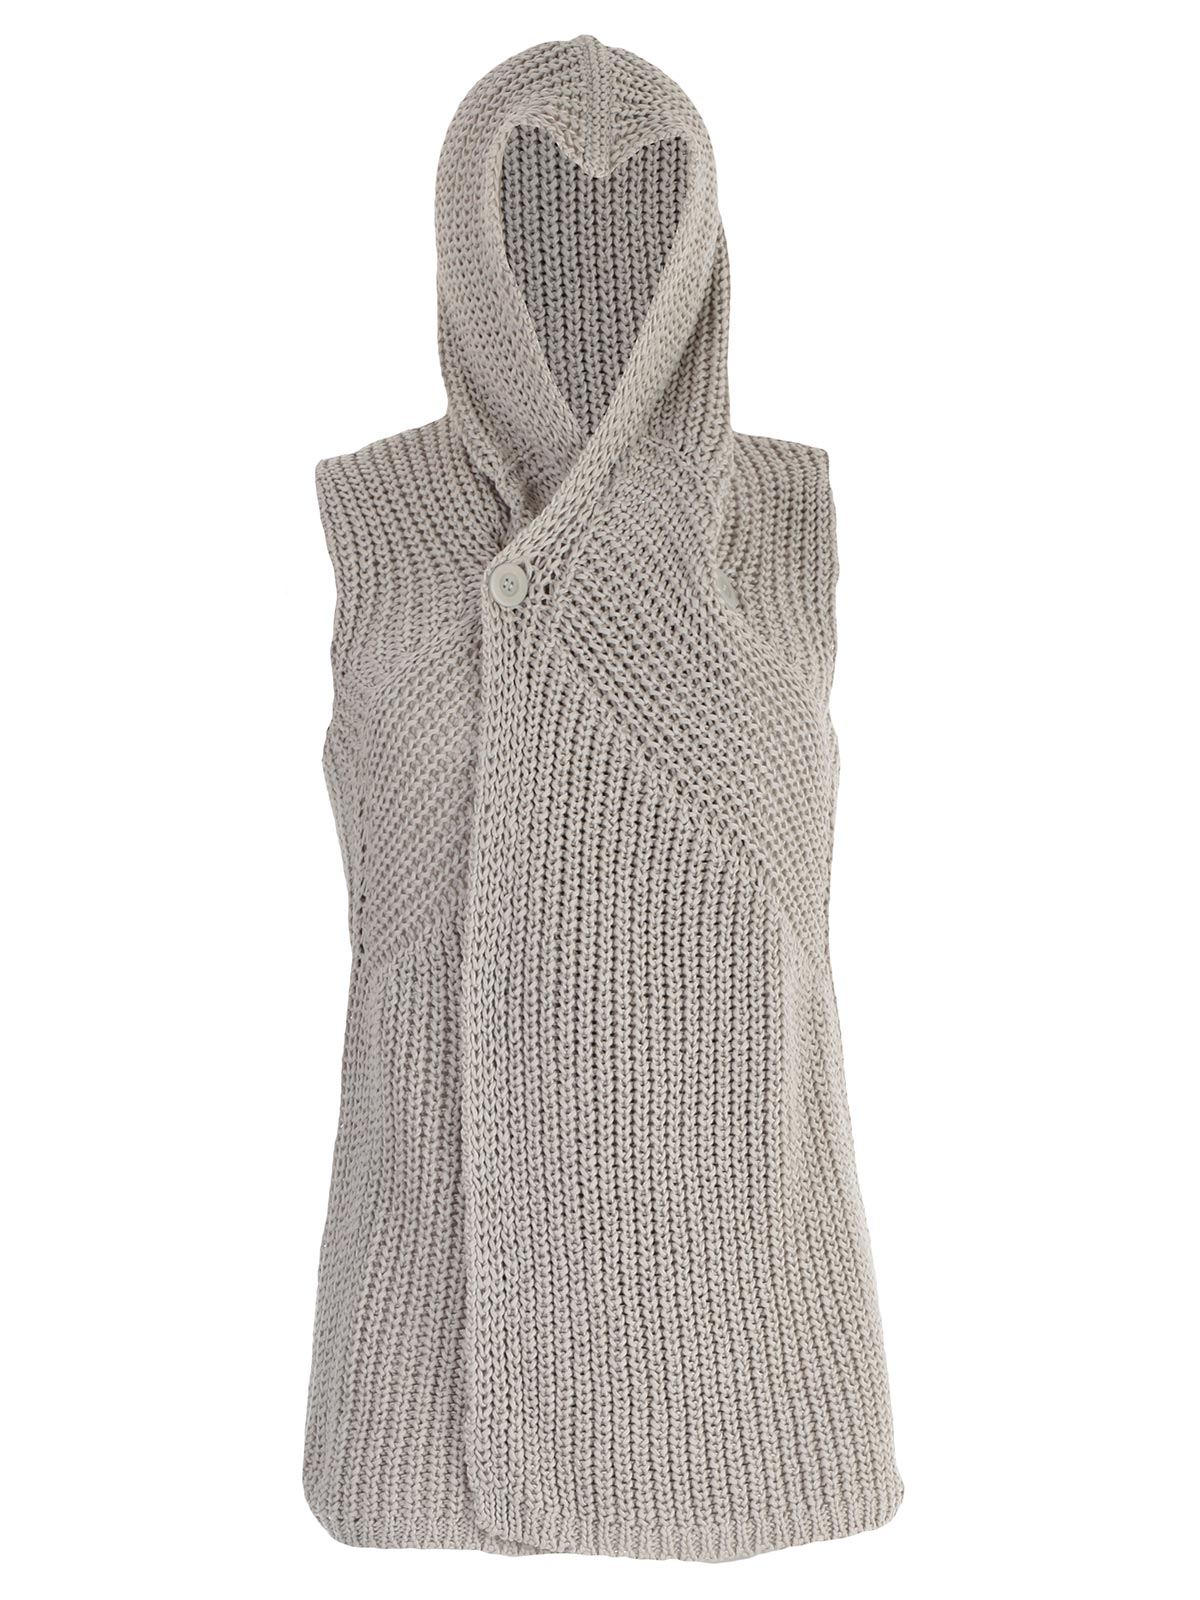 Picture of RICK OWENS VEST CARDIGAN SMANICATO